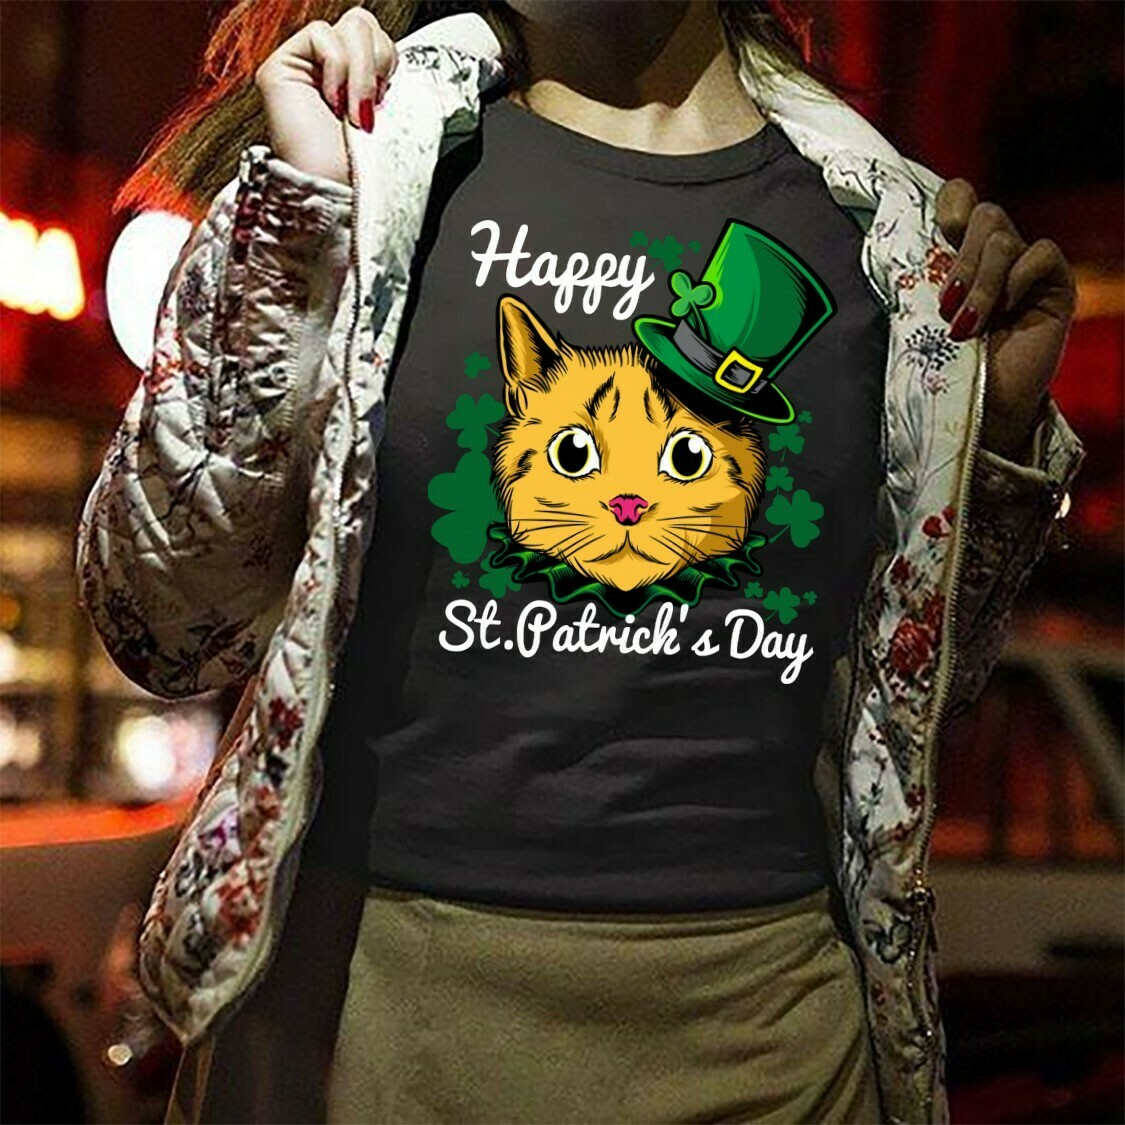 My Cat Is My Lucky Charm Happy Patrick's Day,Cats Caticorn Leprechaun Funny St Paddy's Day  T-Shirt Hoodie Sweatshirt Sweater Tee Kids Youth Gifts Jolly Family Gifts